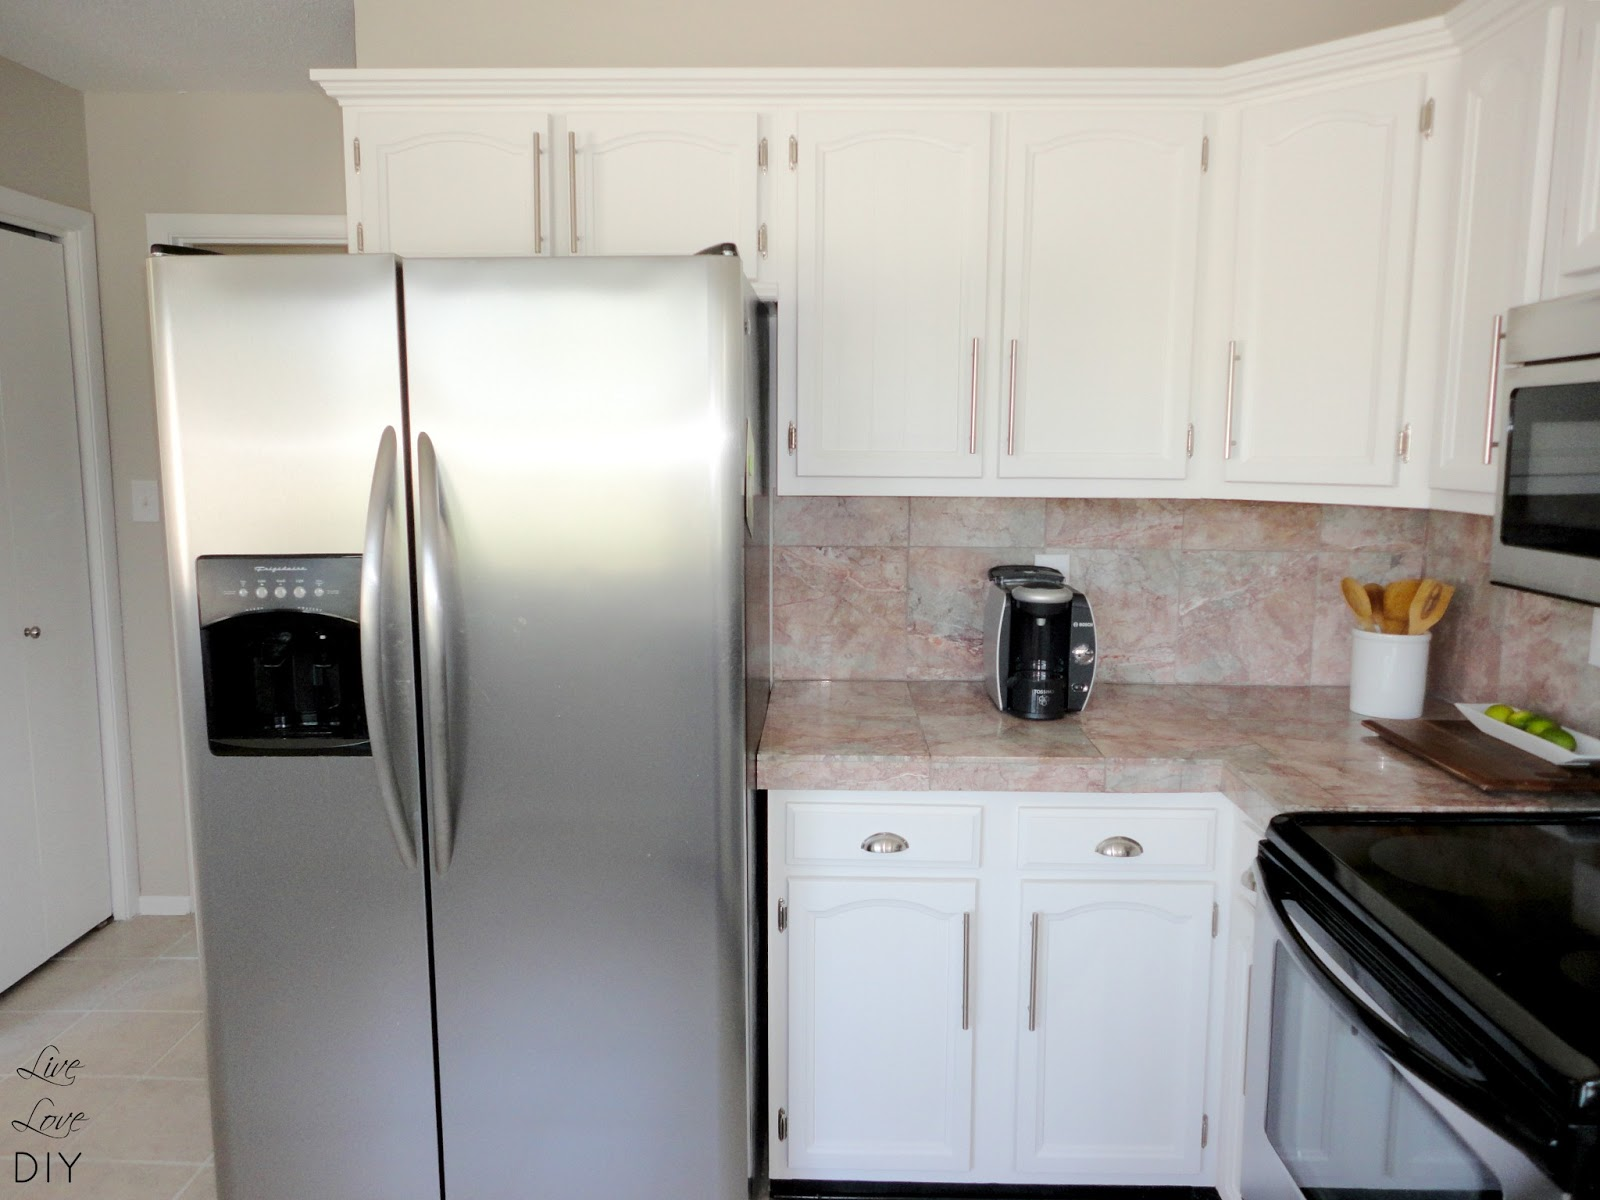 White Kitchen Cupboards livelovediy: how to paint kitchen cabinets in 10 easy steps